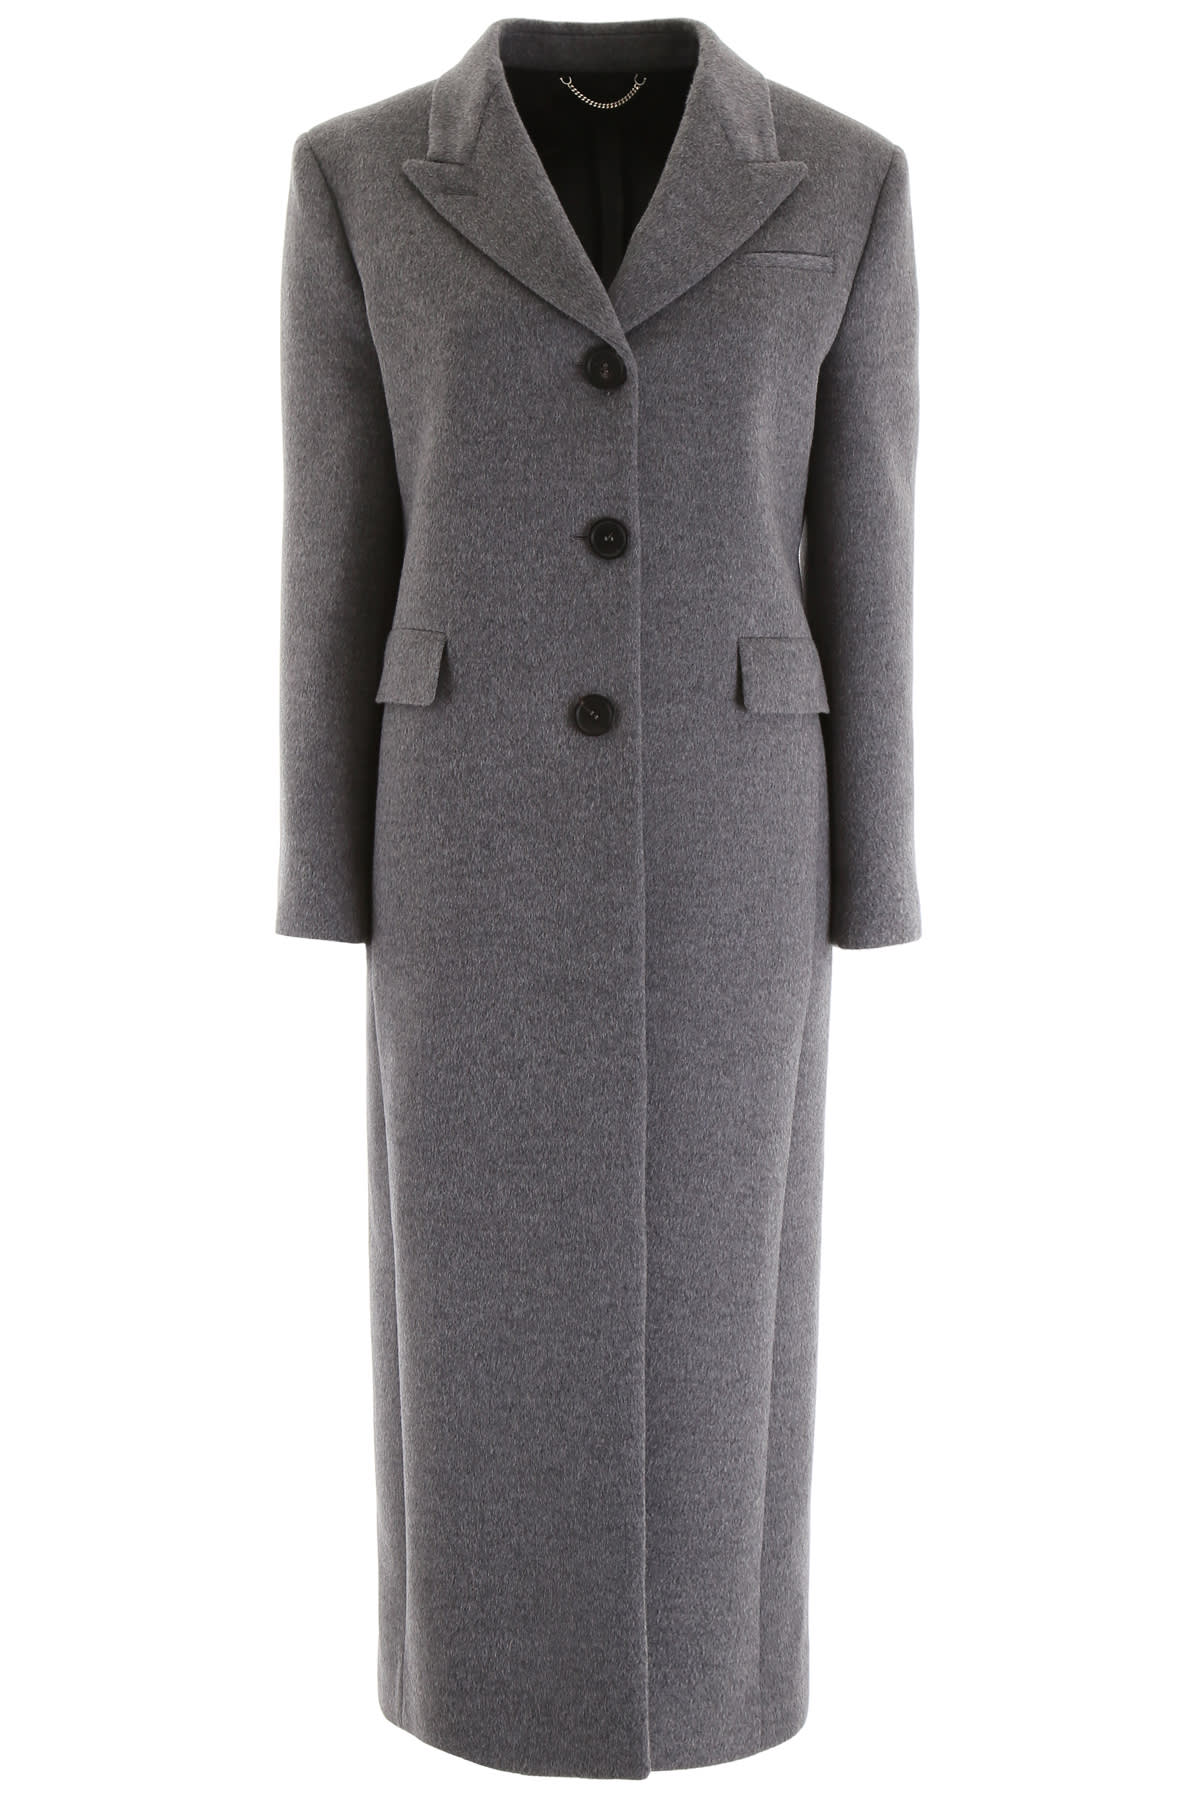 Salvatore Ferragamo Long Tailoring Coat